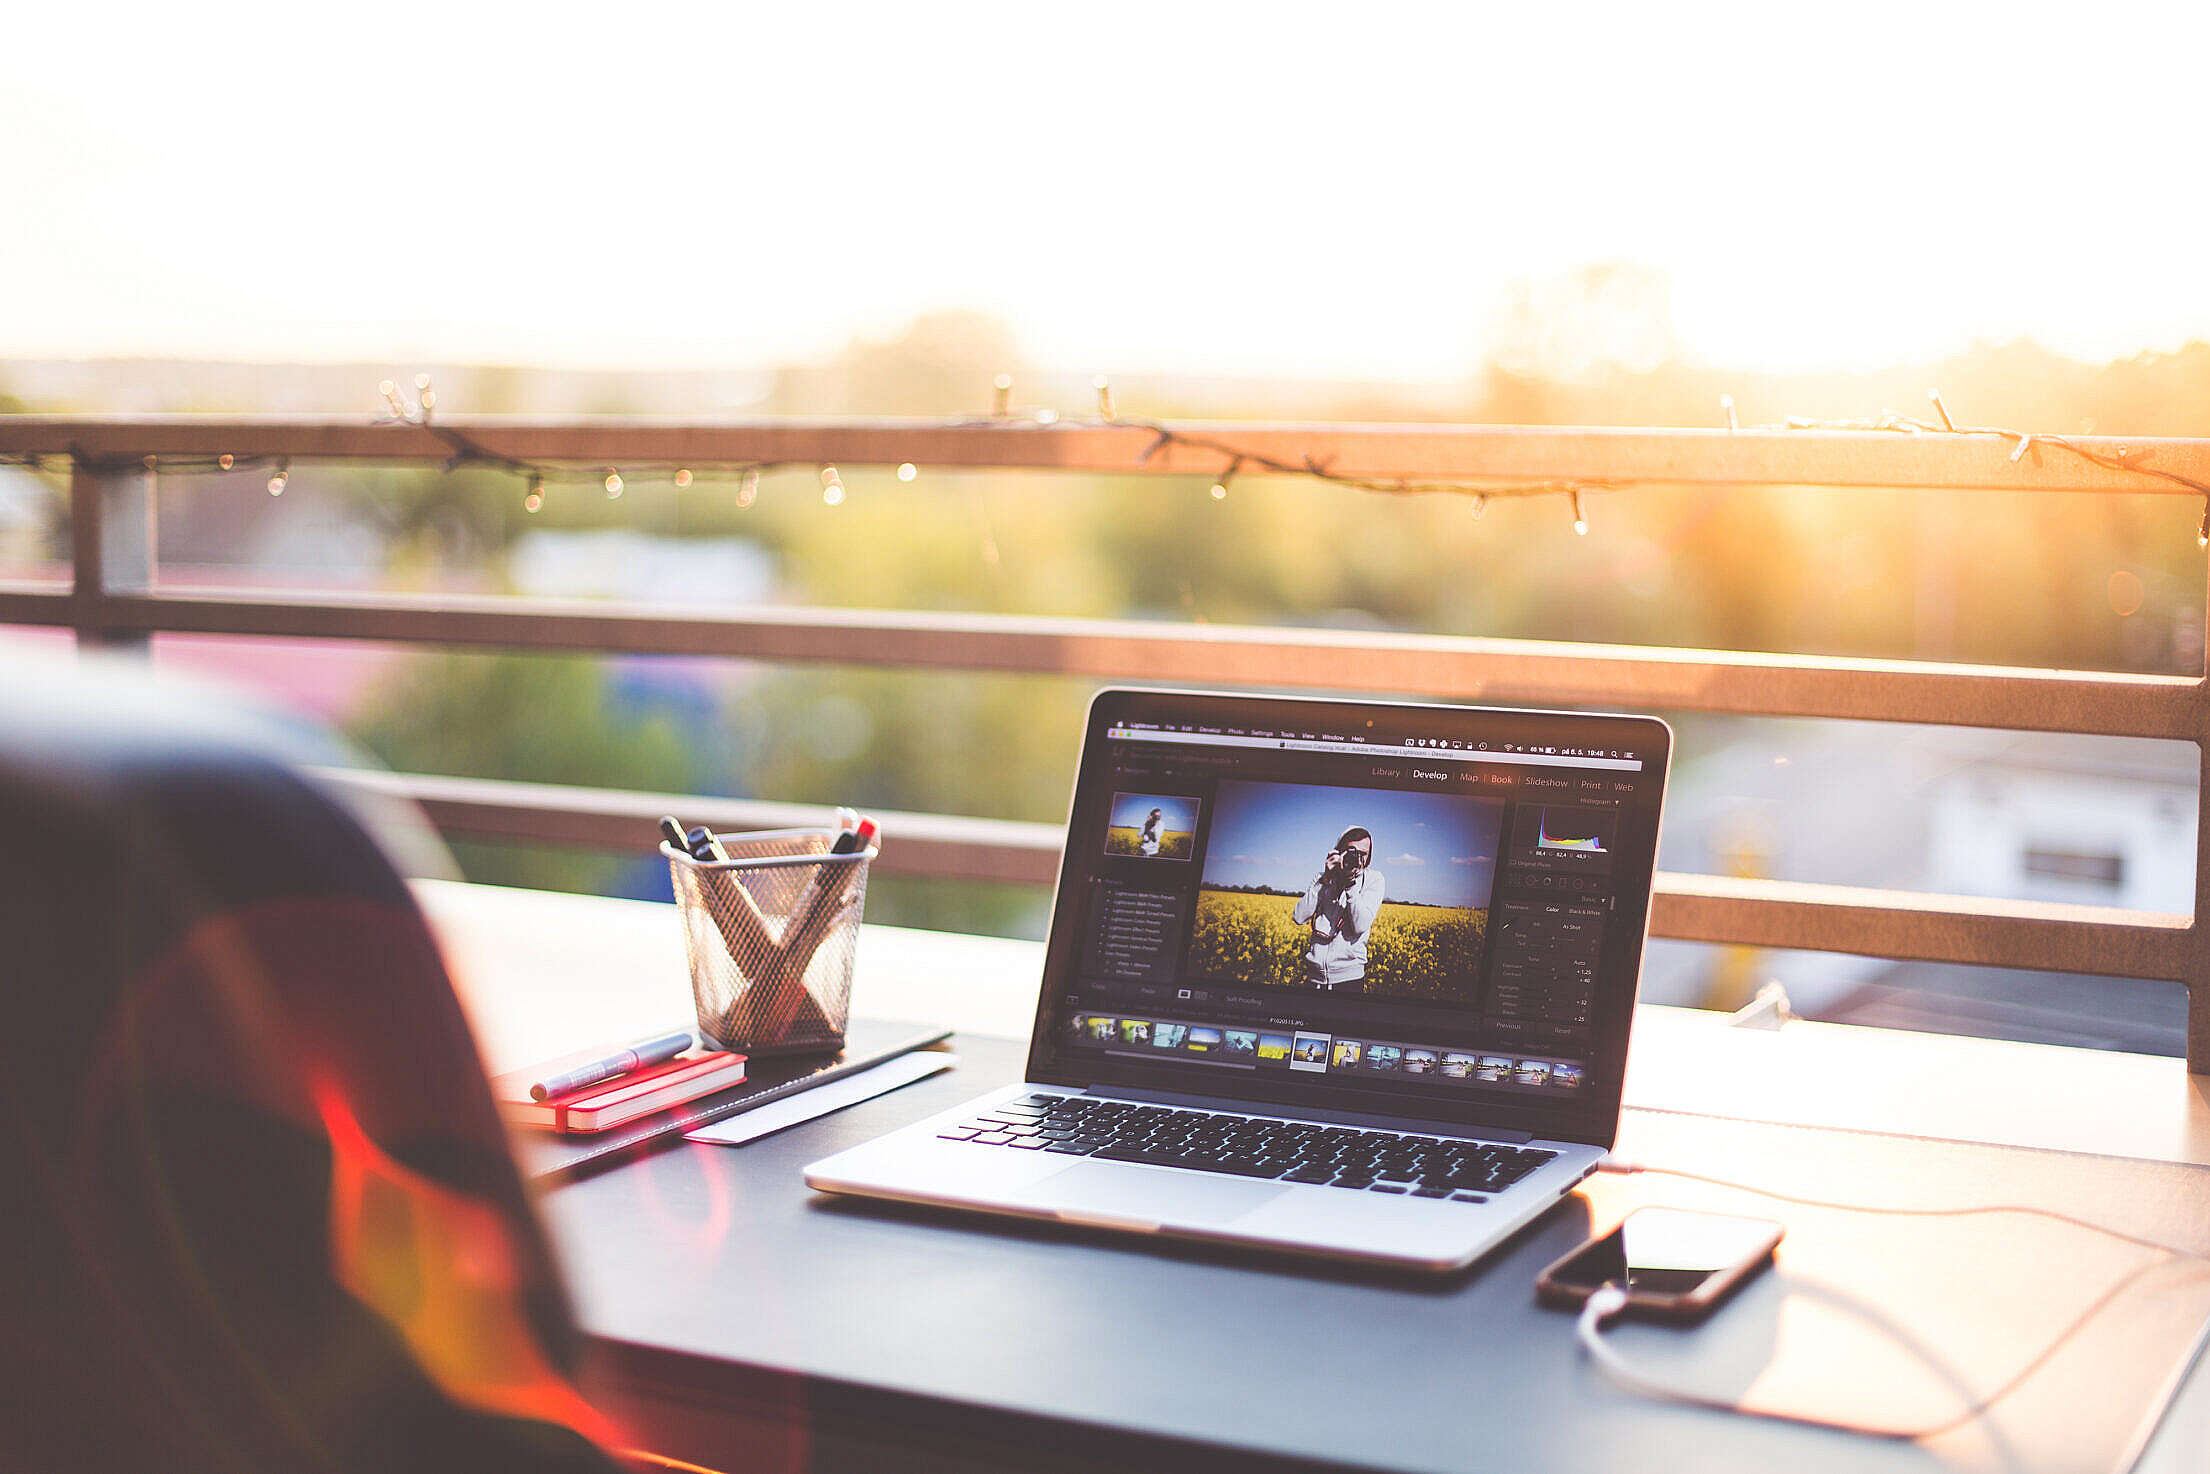 Outdoor Office Workspace Setup with High Ceiling Free Stock Photo